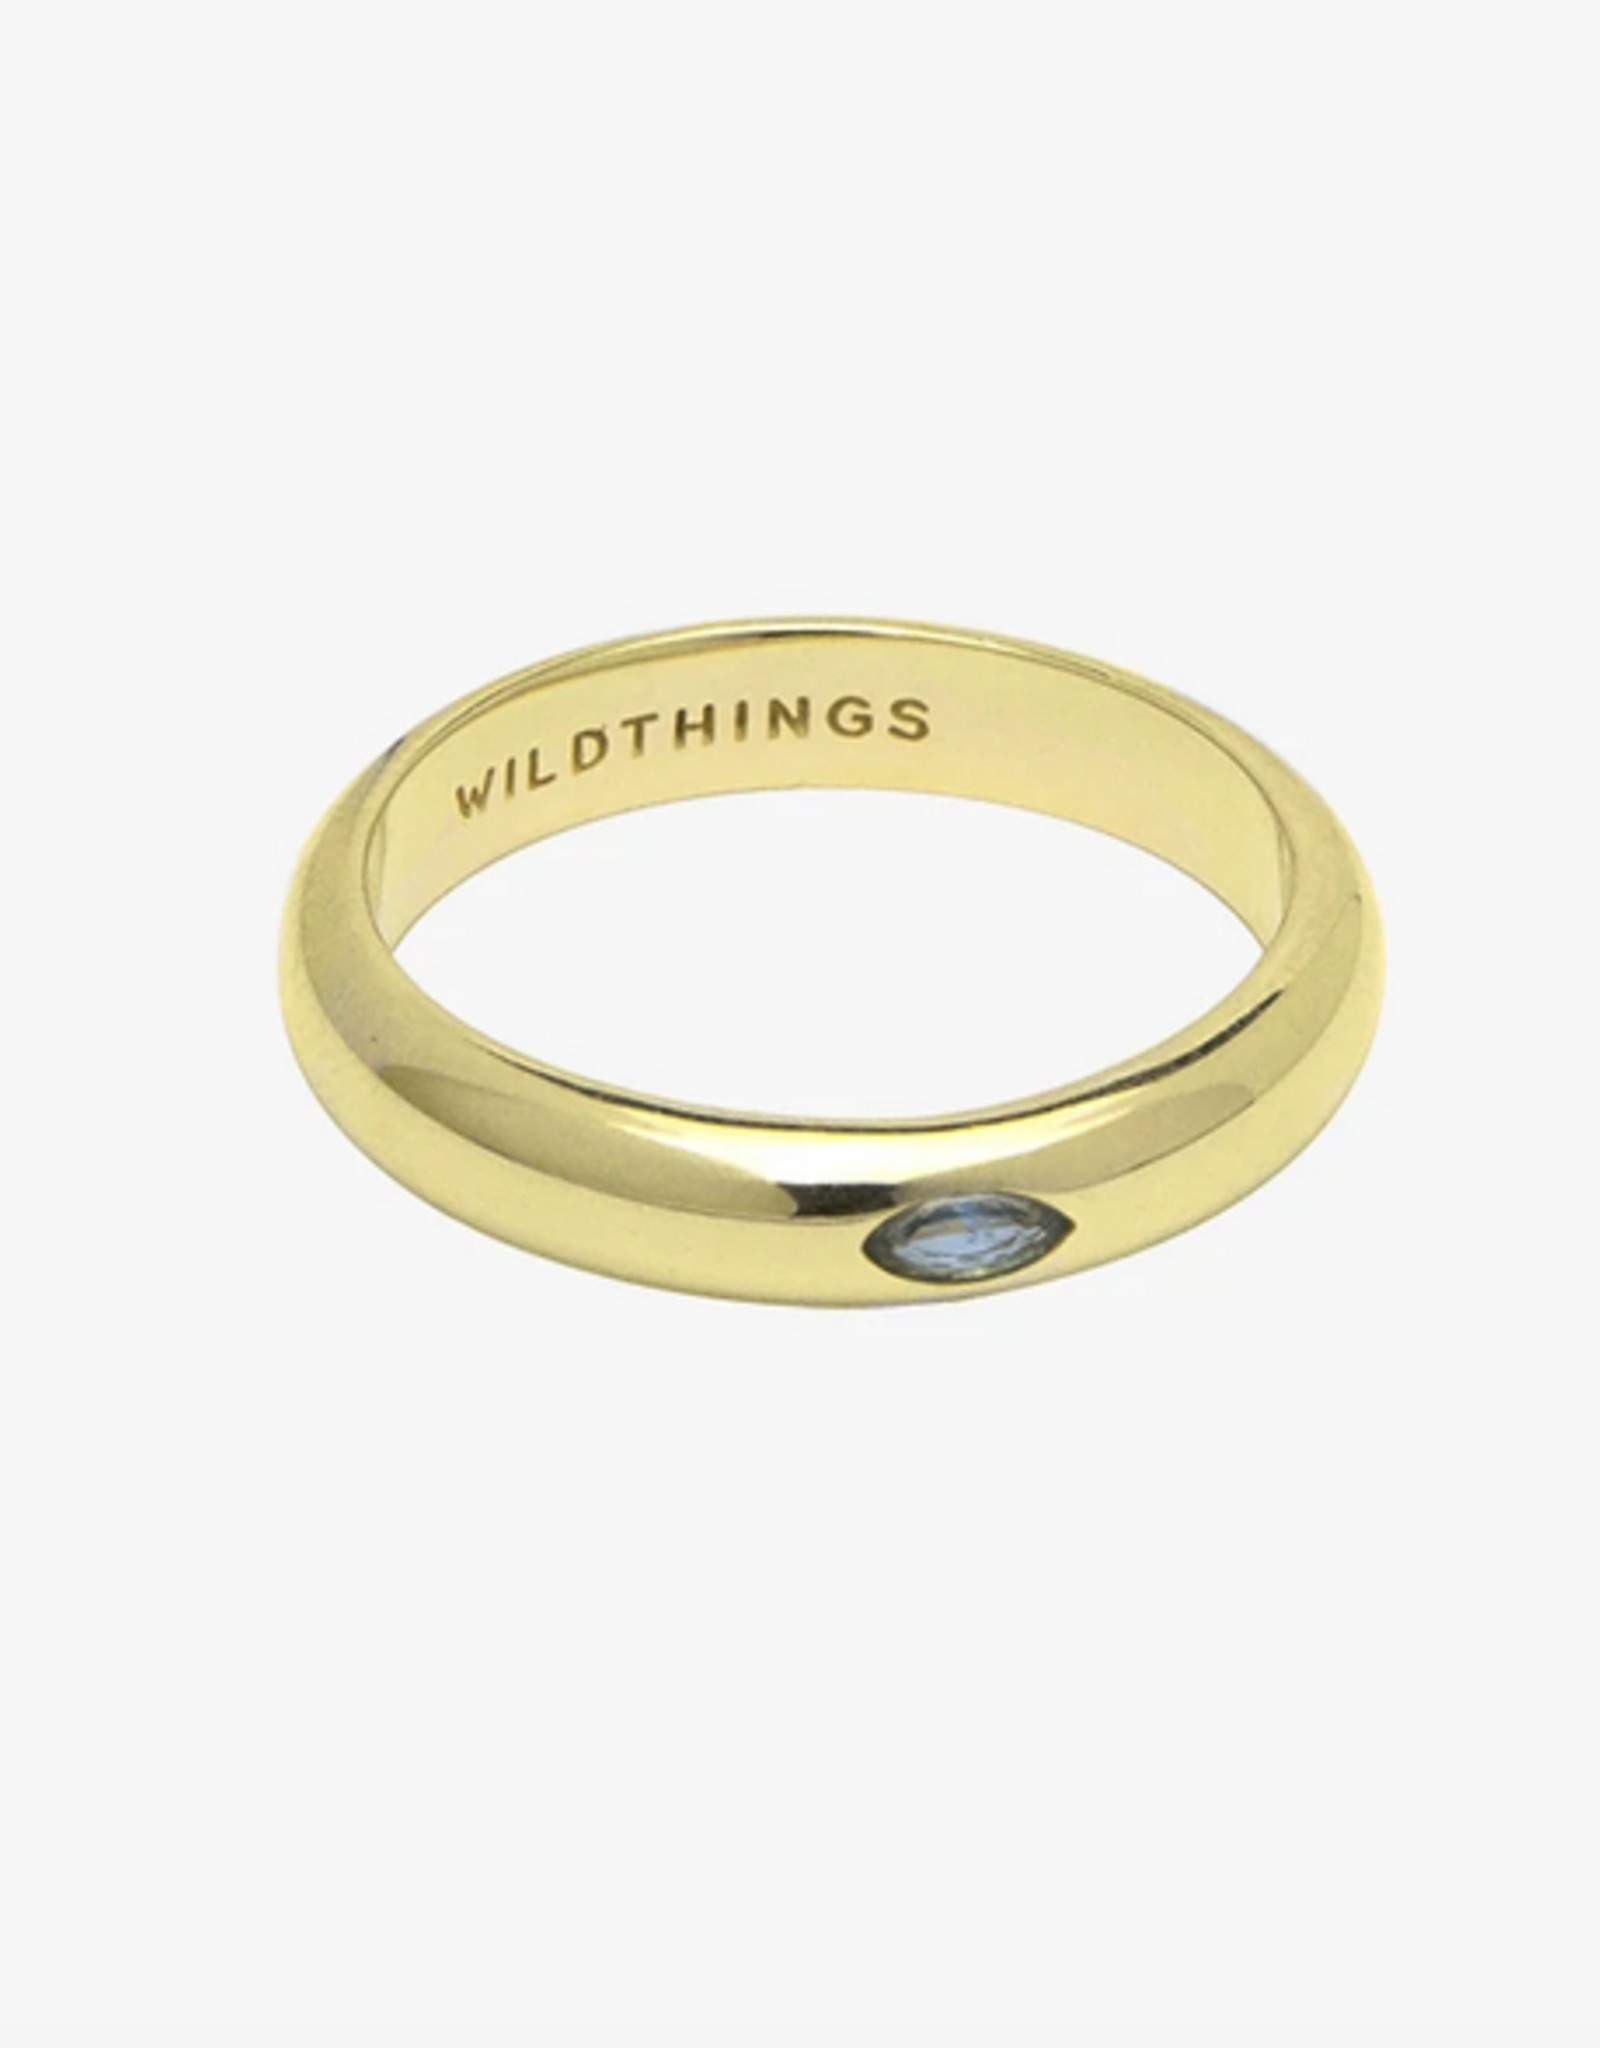 Wildthings Collectables Aquamarine Pebble ring gold - S